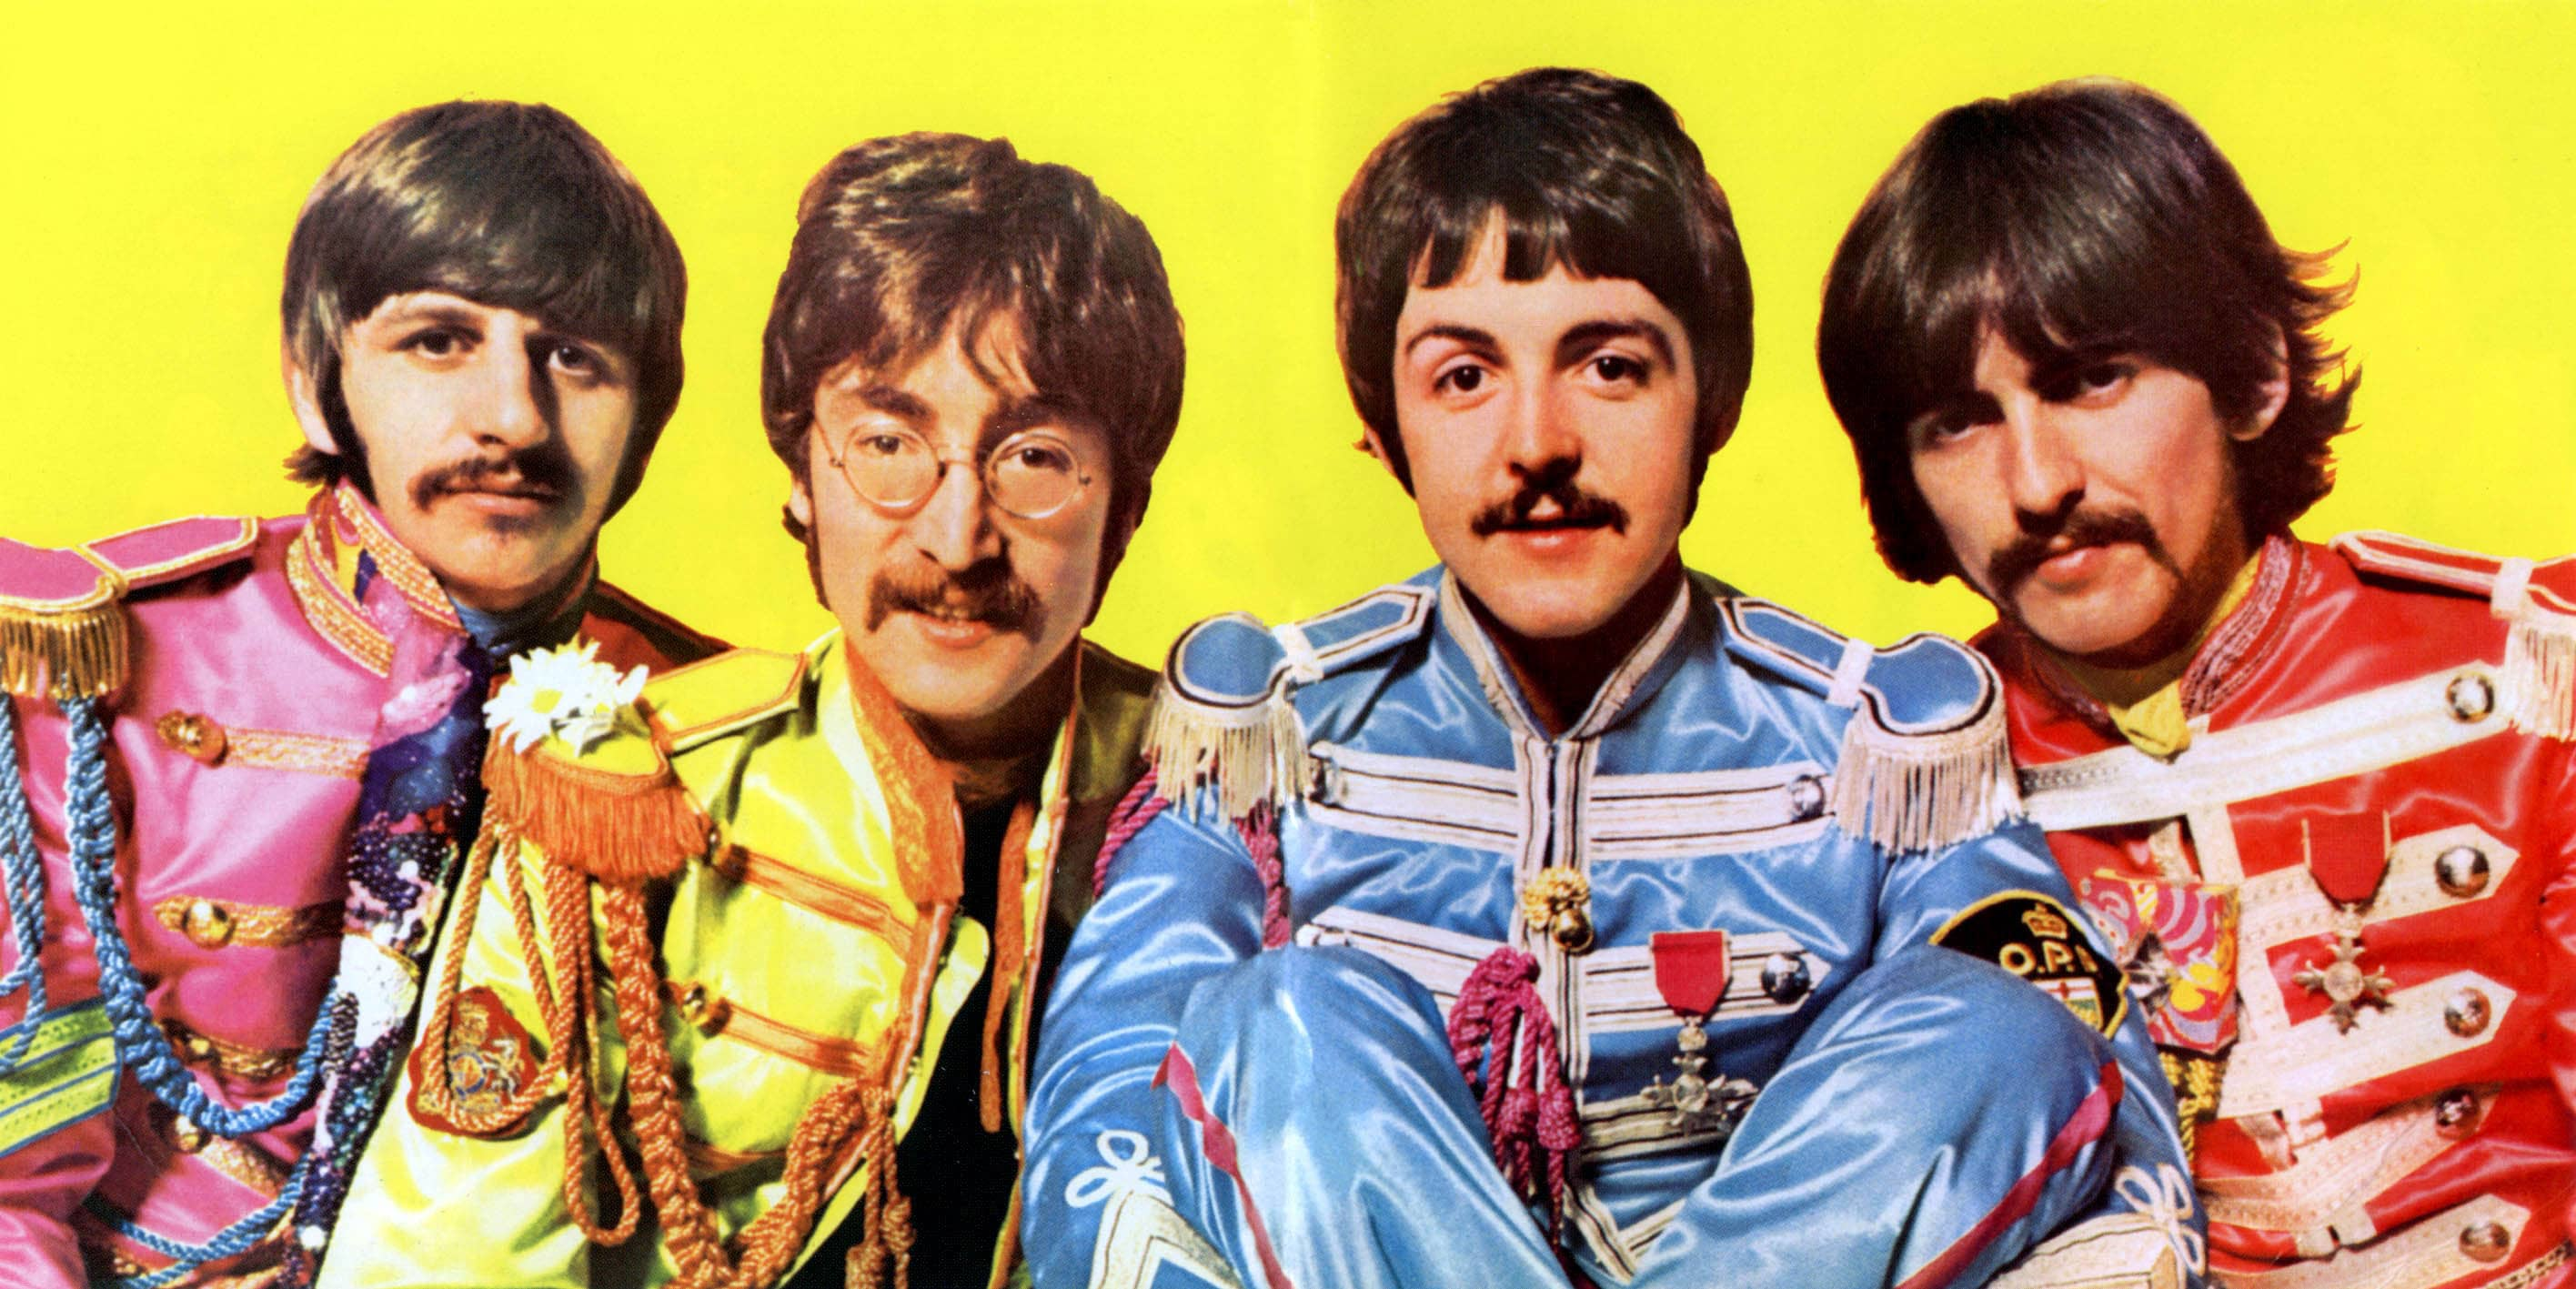 Sgt. Pepper's cover shooting